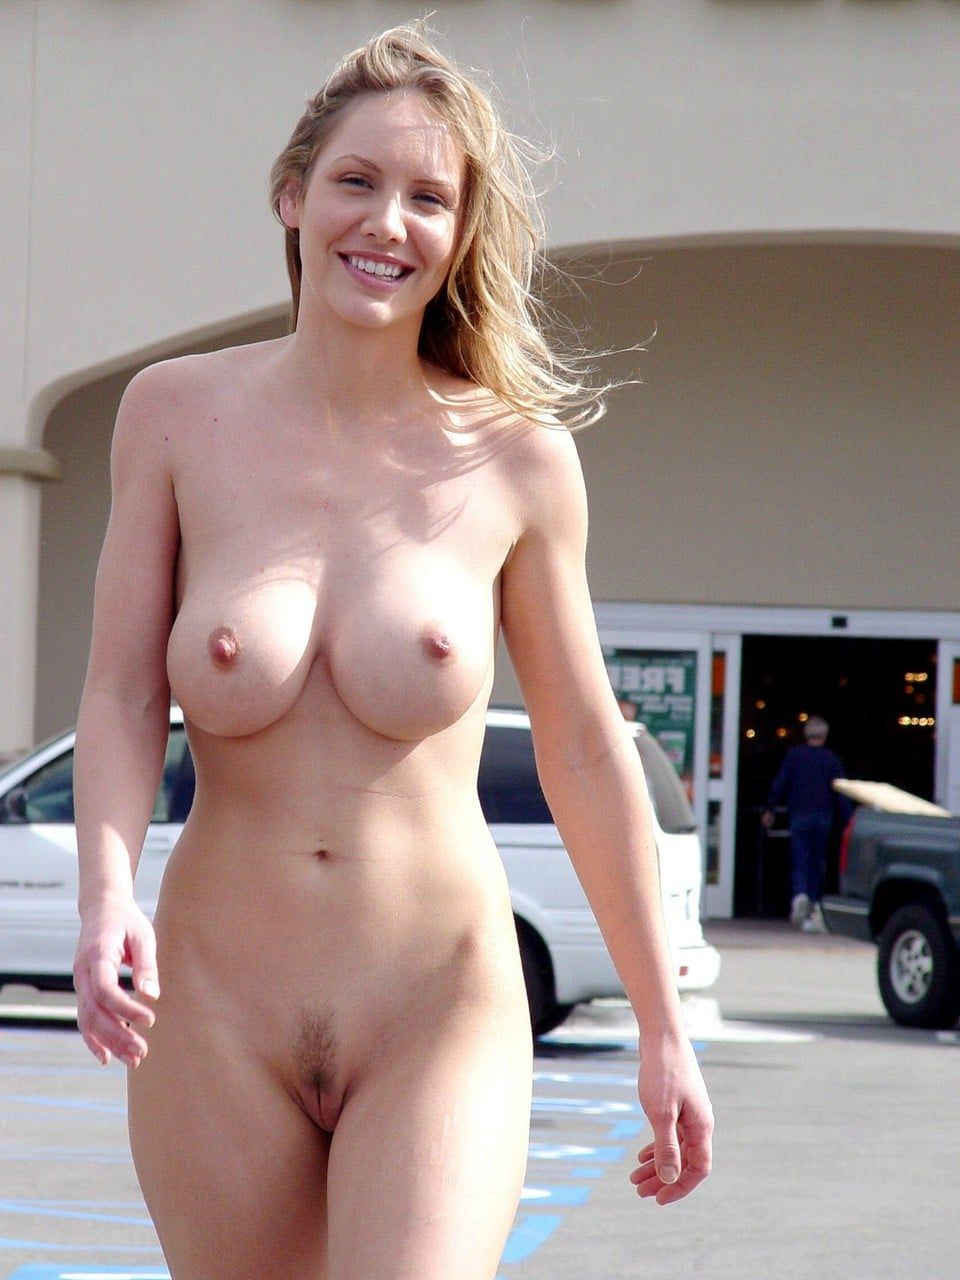 Apologise, nude mature woman pic that interfere